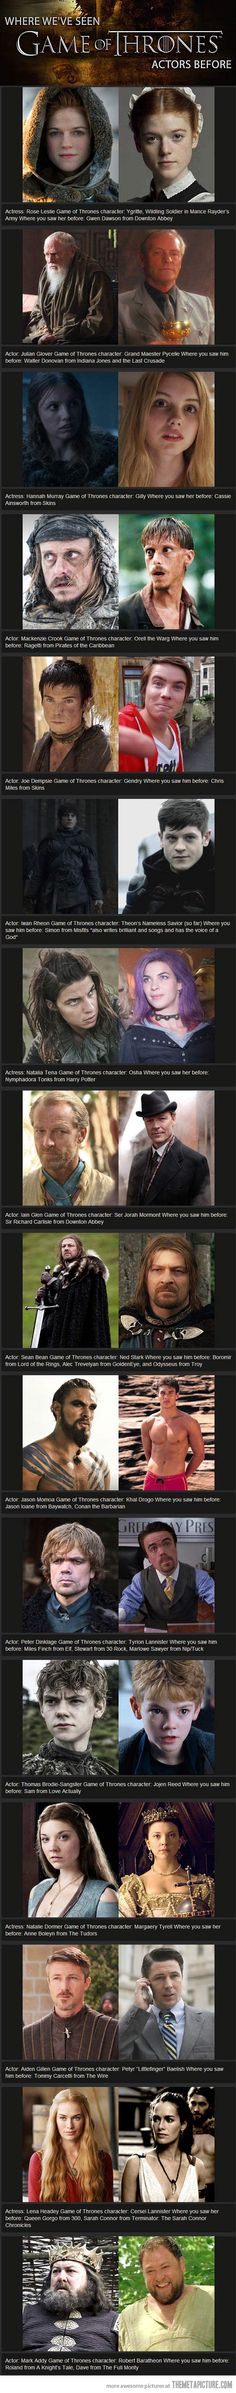 Game of Thrones characters: Where Have We Seen You Before?